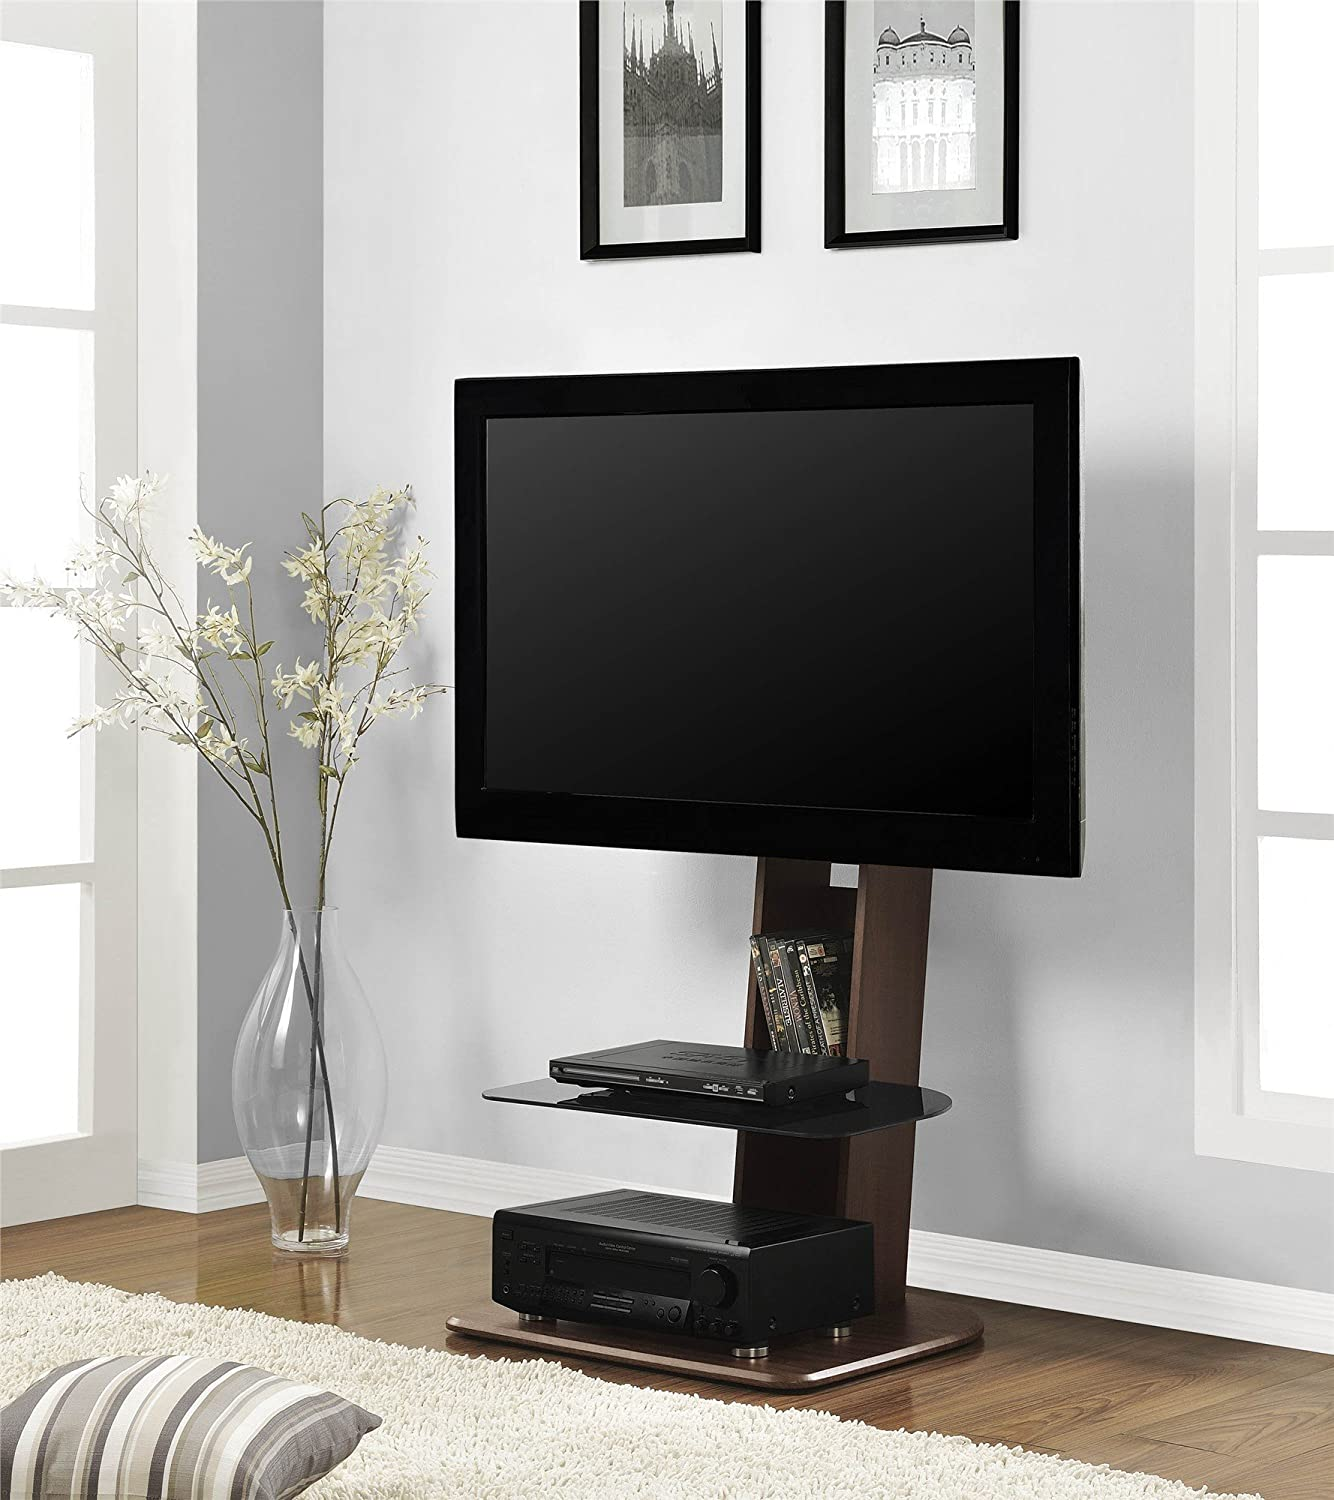 altra furniture galaxy tv stand with mount for tvs up to inch  - altra furniture galaxy tv stand with mount for tvs up to inch walnutfinish amazonca home  kitchen